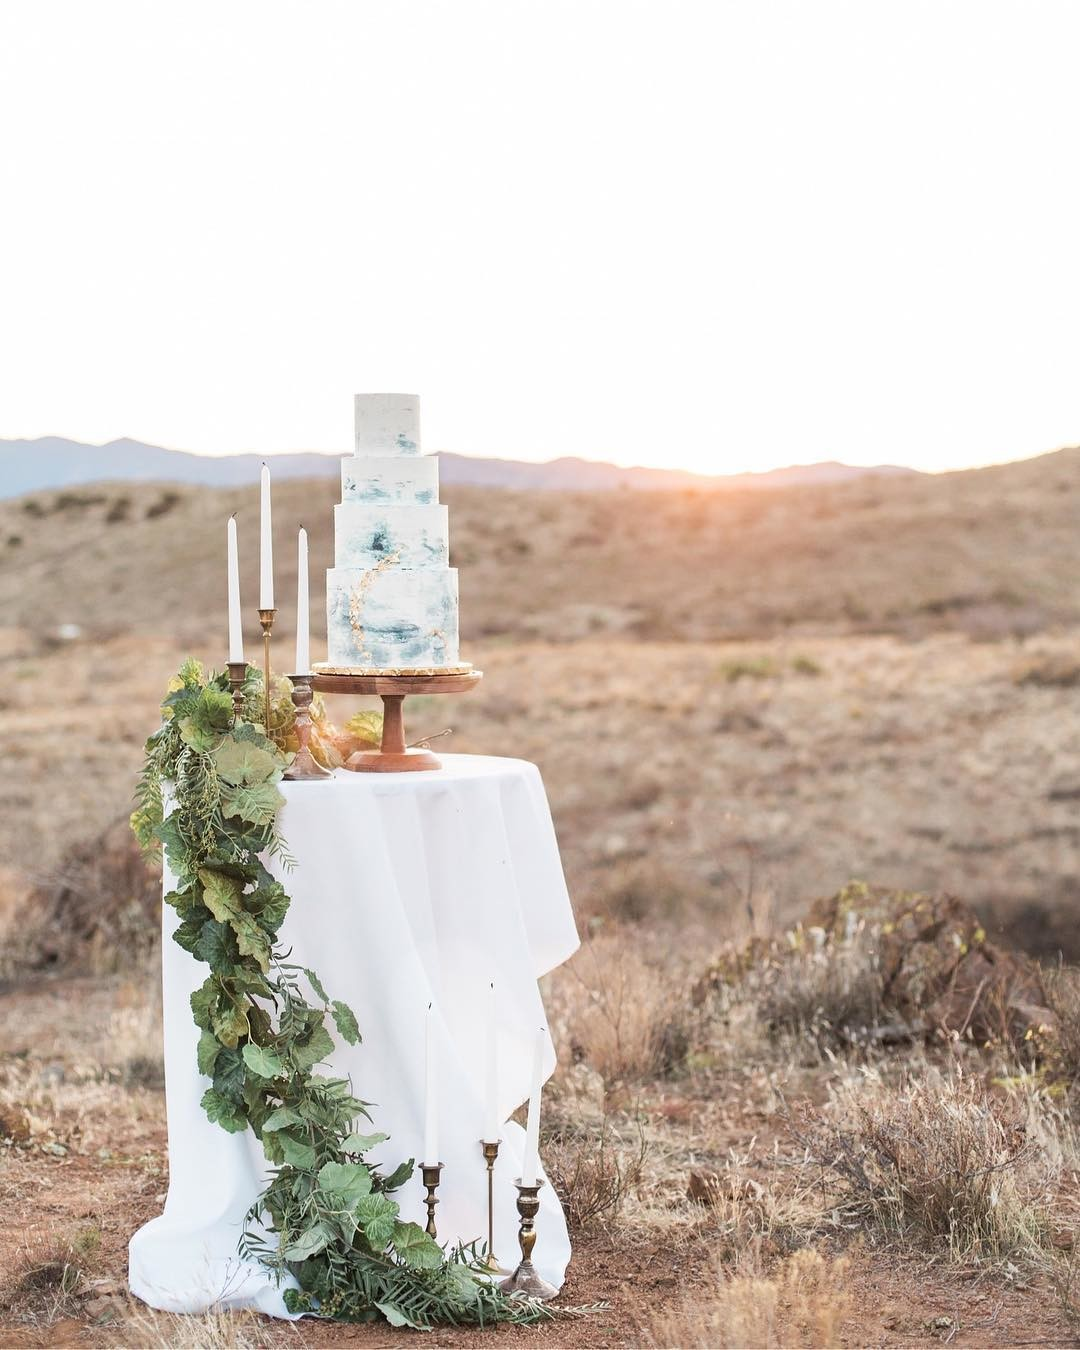 Just a gorgeous cake in the desert